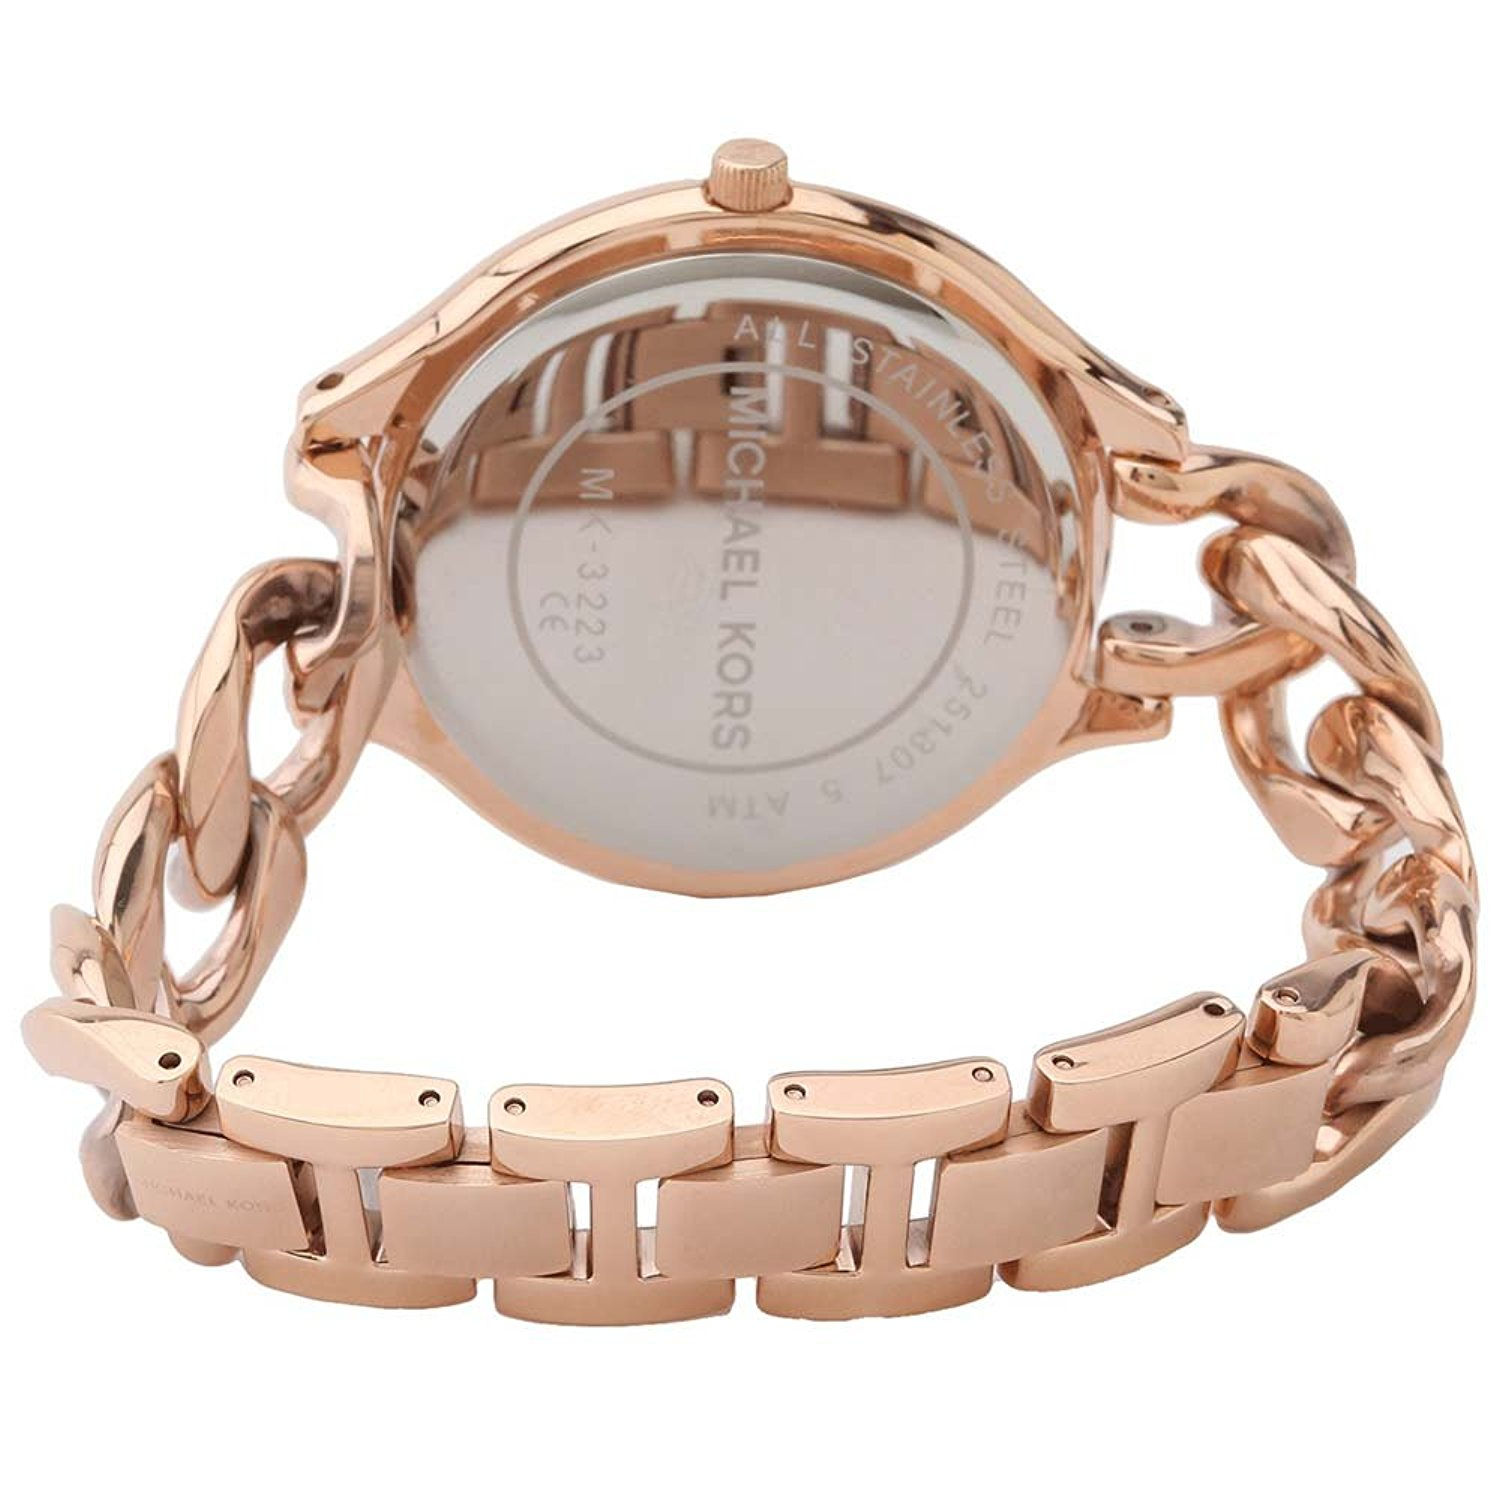 cad4d4adf Michael Kors Women's Slim Runway Rose Dial Twist Watch MK3223